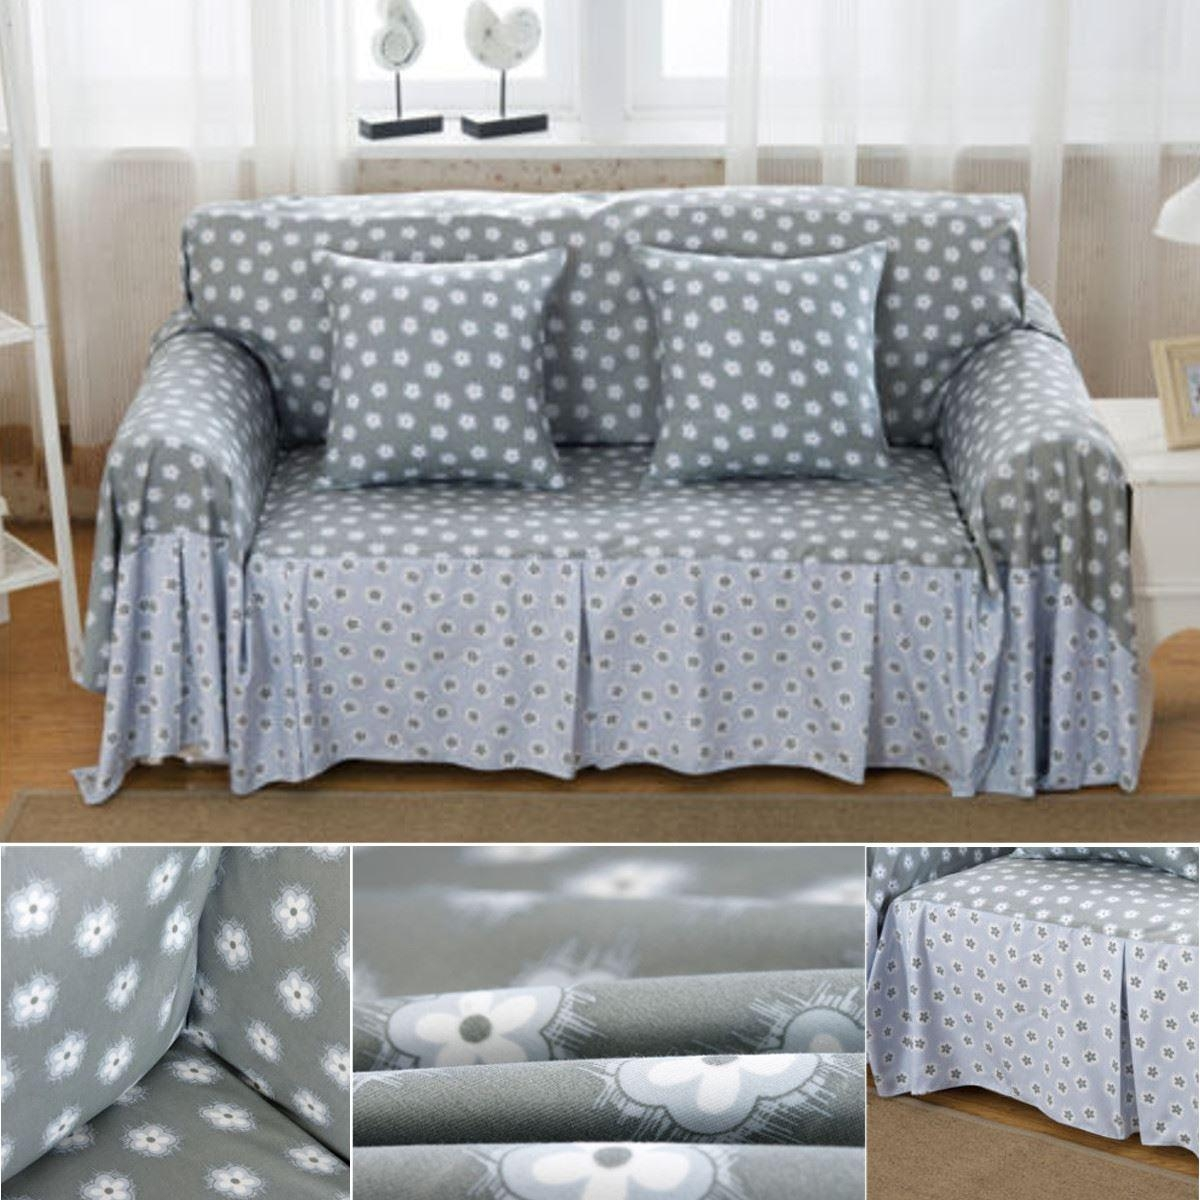 Online Get Cheap Slipcover Sets  Aliexpress | Alibaba Group In 3 Piece Slipcover Sets (Image 16 of 20)